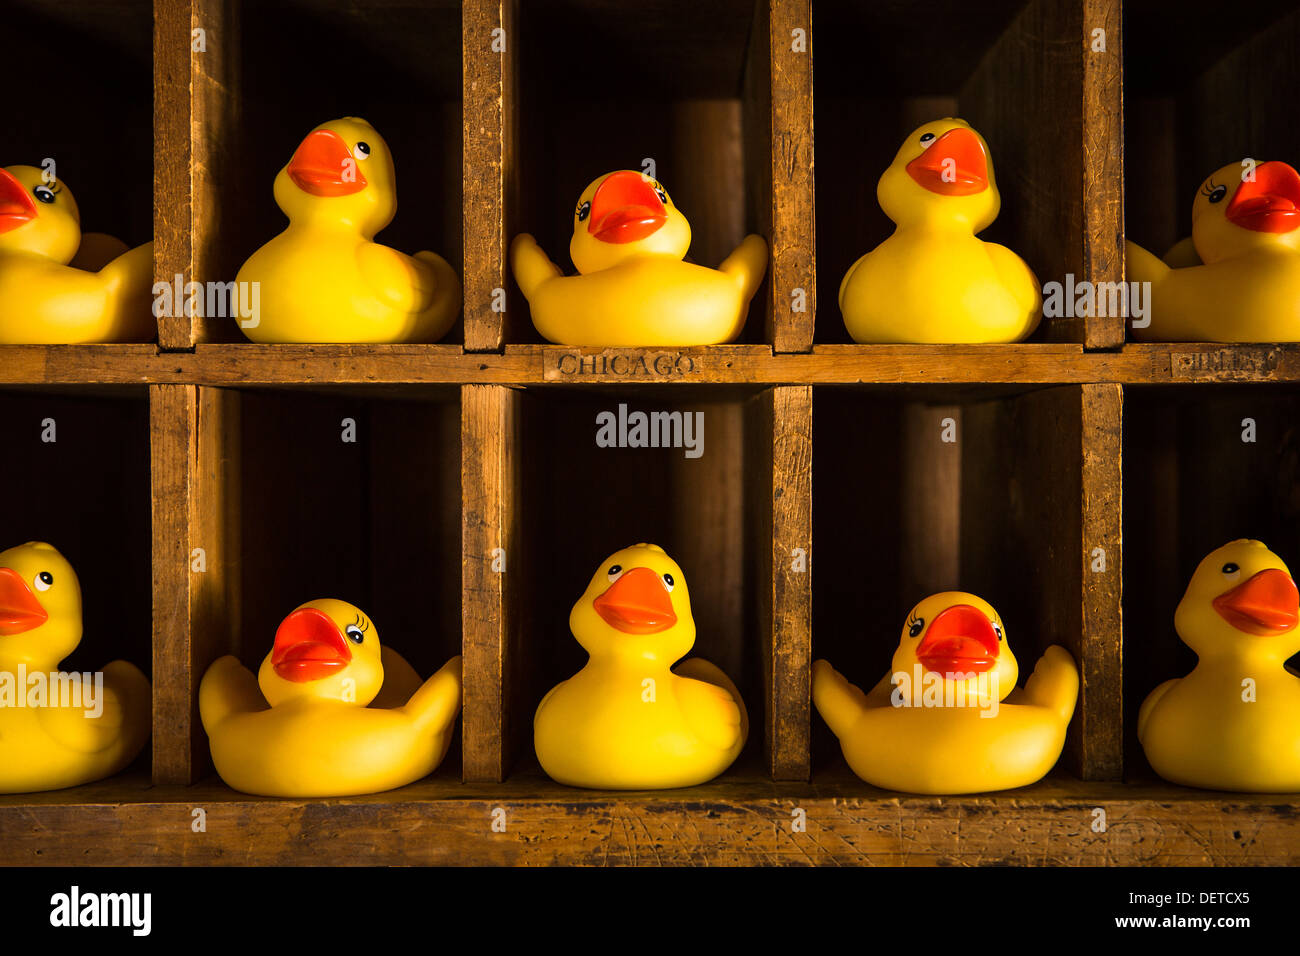 Row Line Of Ducks Stock Photos & Row Line Of Ducks Stock Images - Alamy